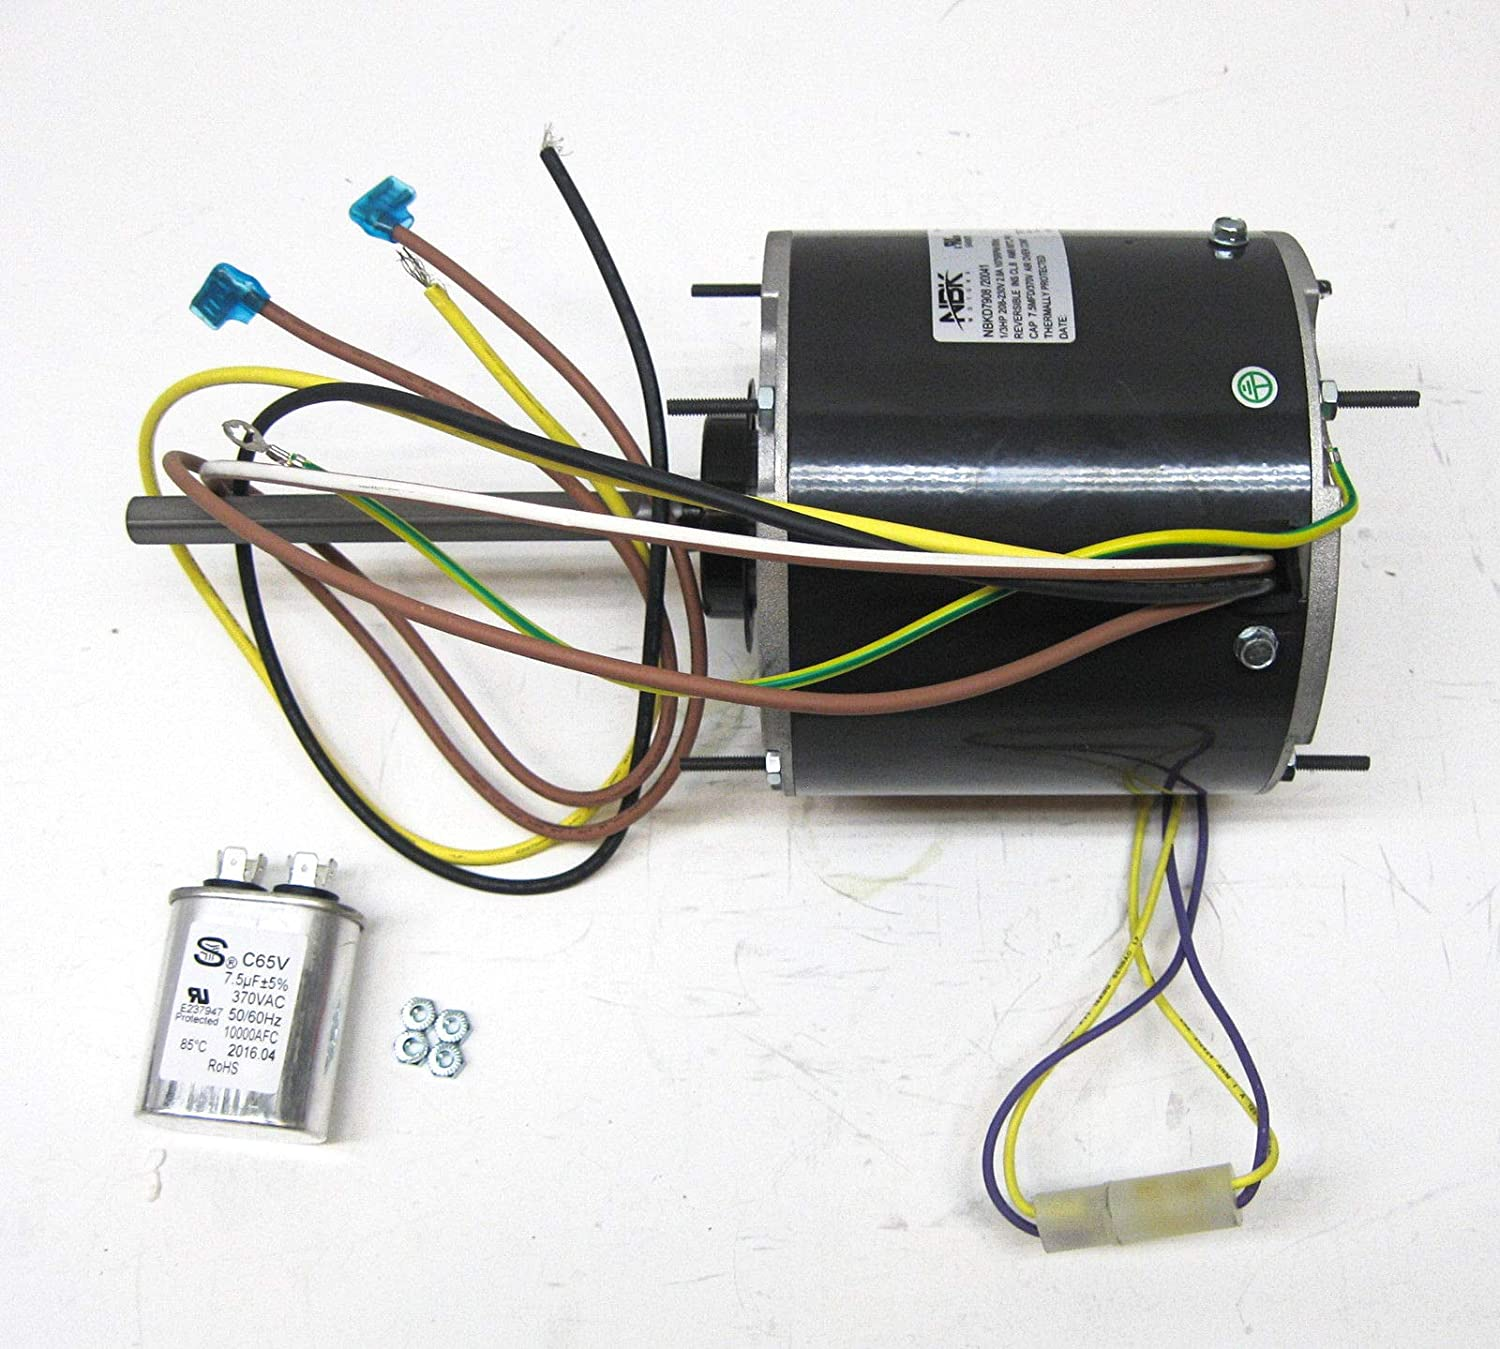 fasco d727 wiring diagram ac air conditioner condenser fan motor 1 3 hp 1075 rpm 230 volts  ac air conditioner condenser fan motor